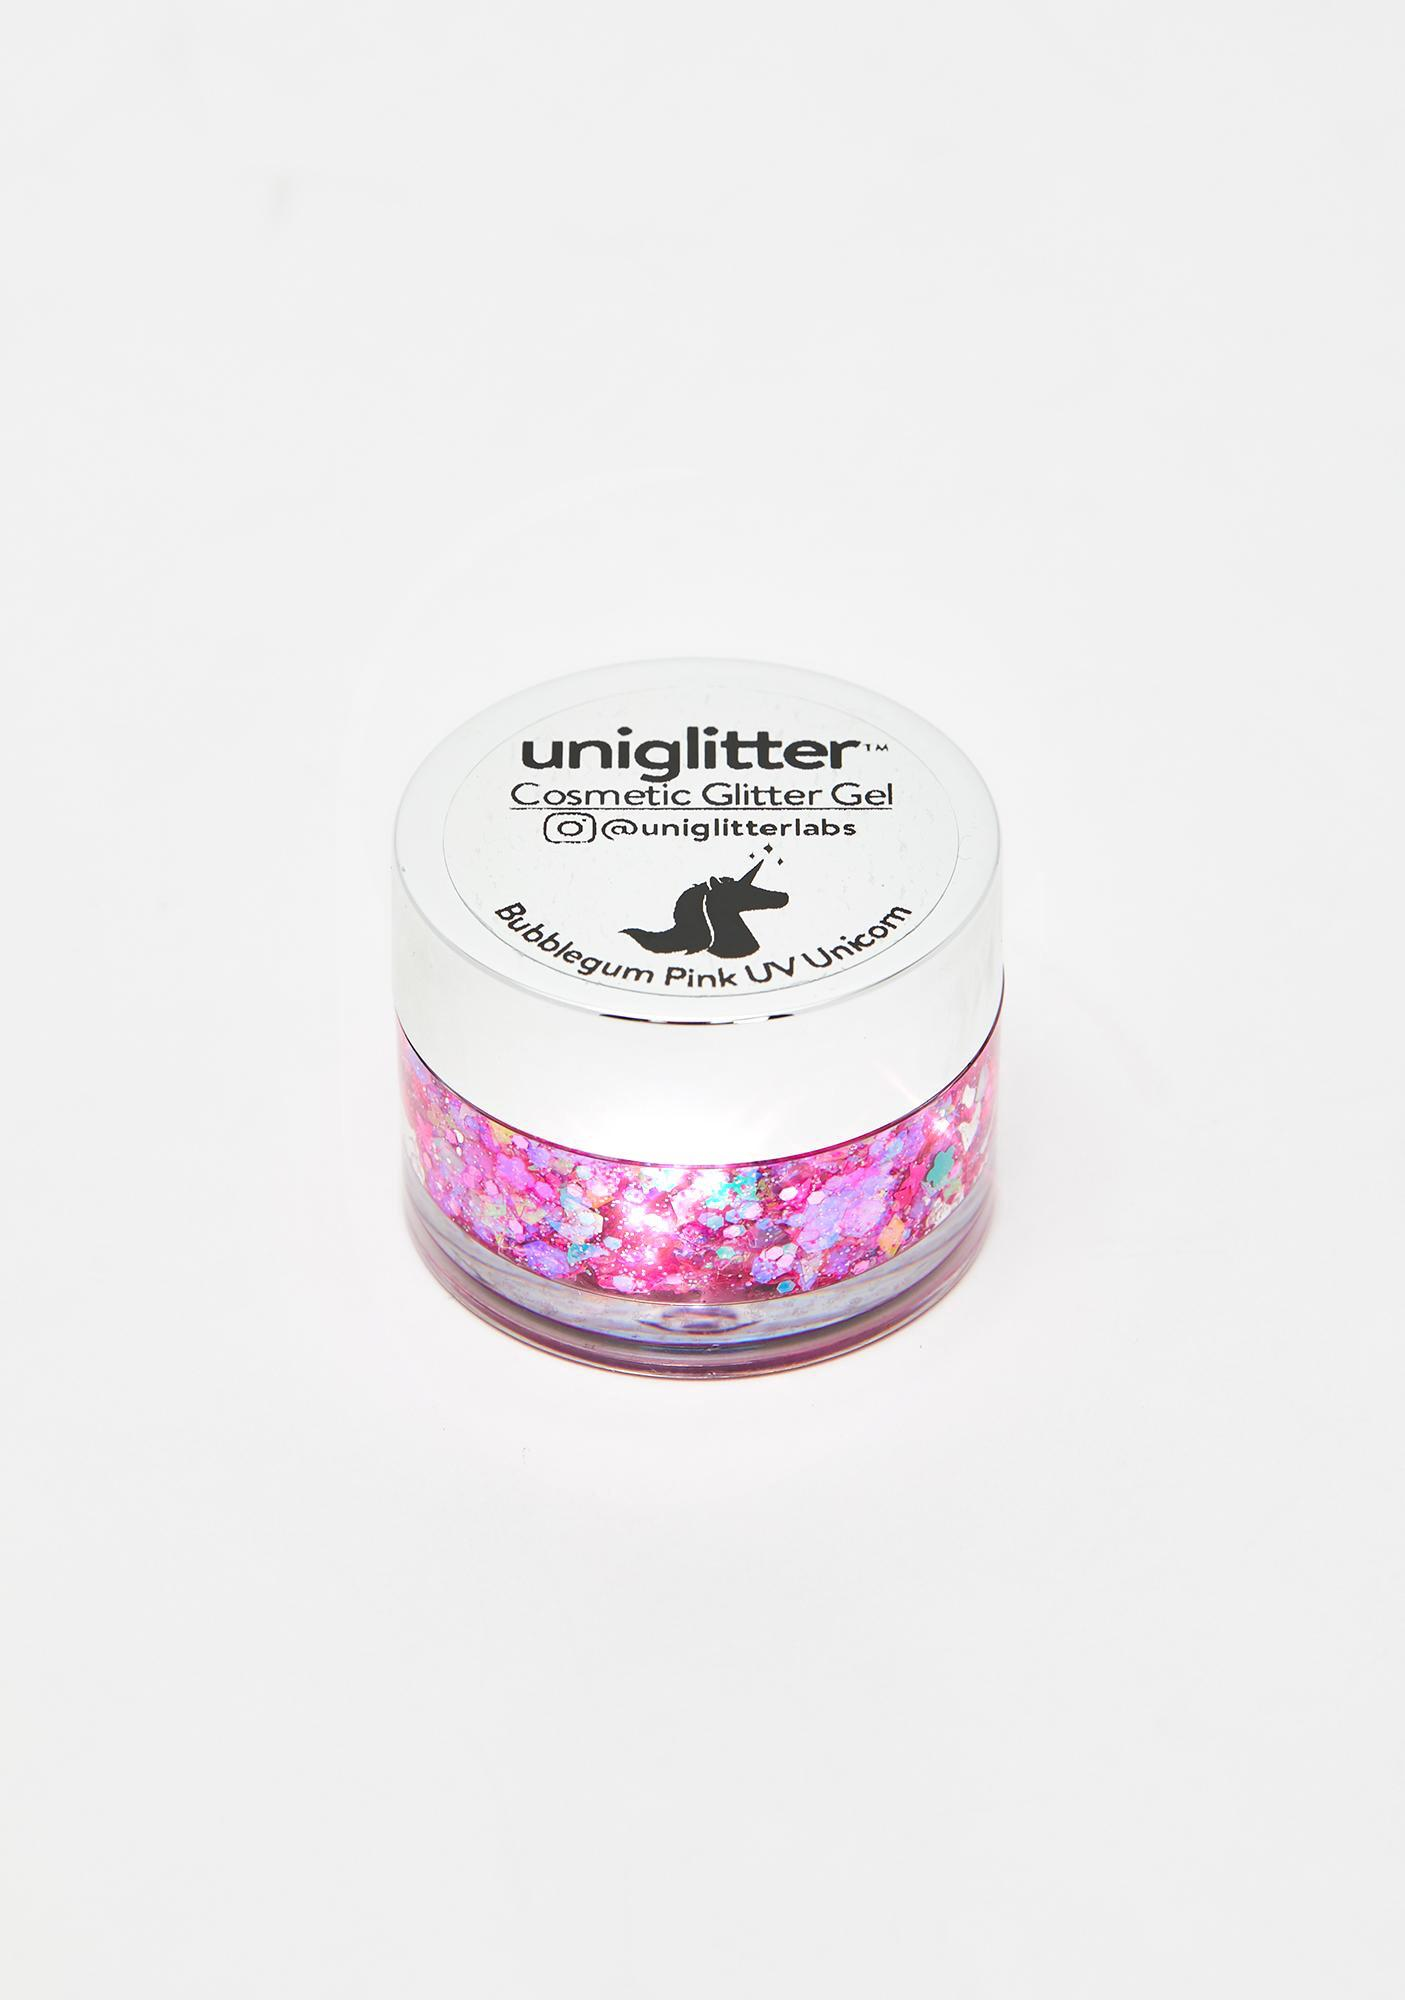 Uniglitter Bubblegum Pink UV Unicorn Glitter Gel